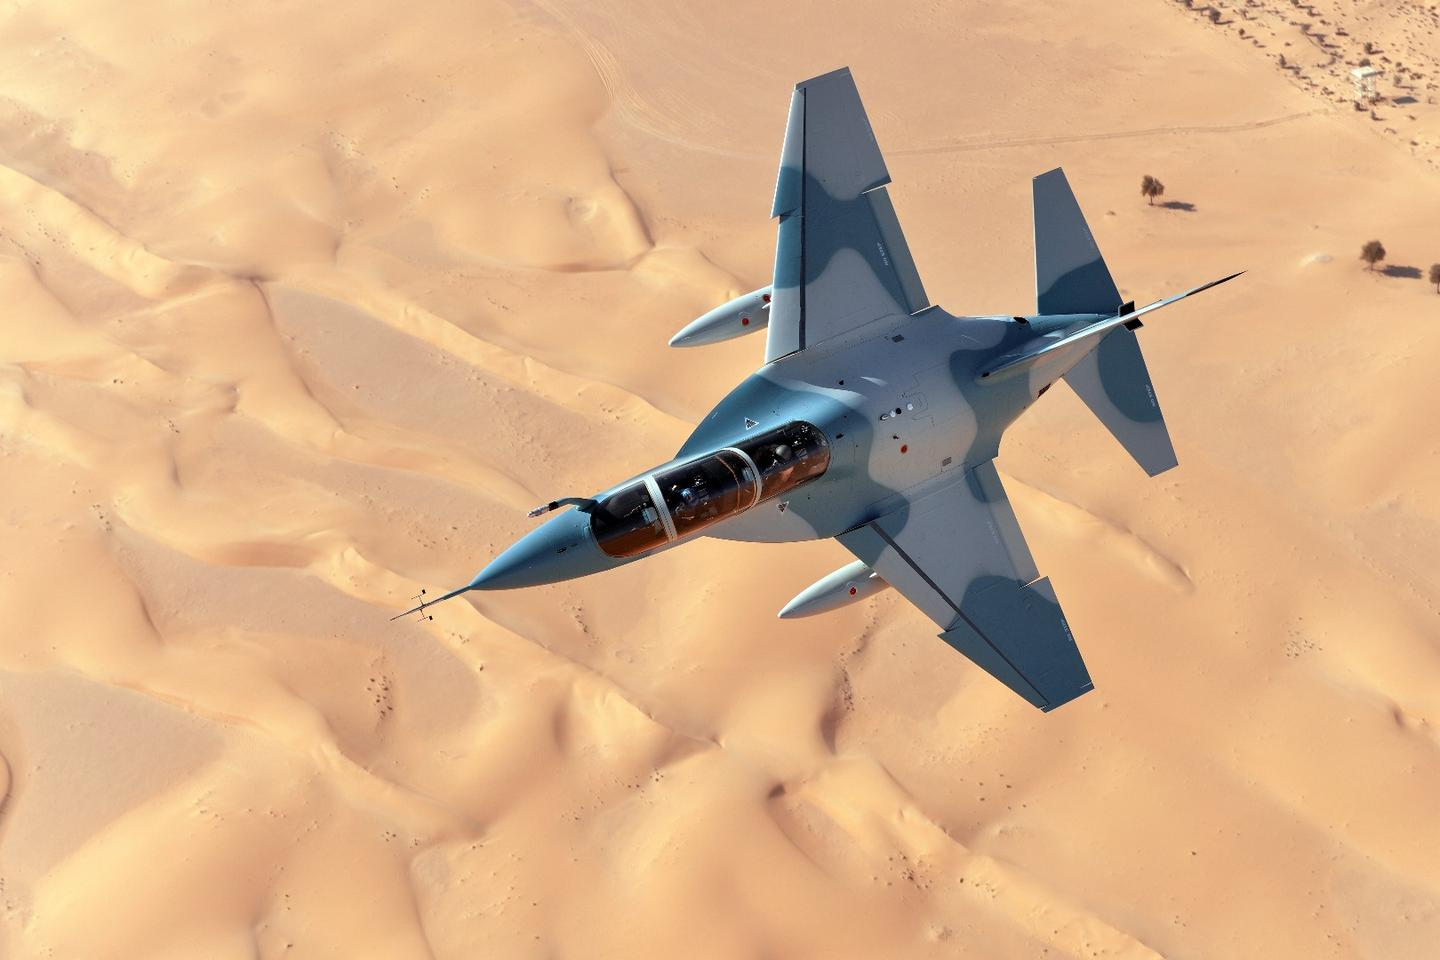 The T-100 is based on the Alenia Aermacchi M-346 Master jet trainer